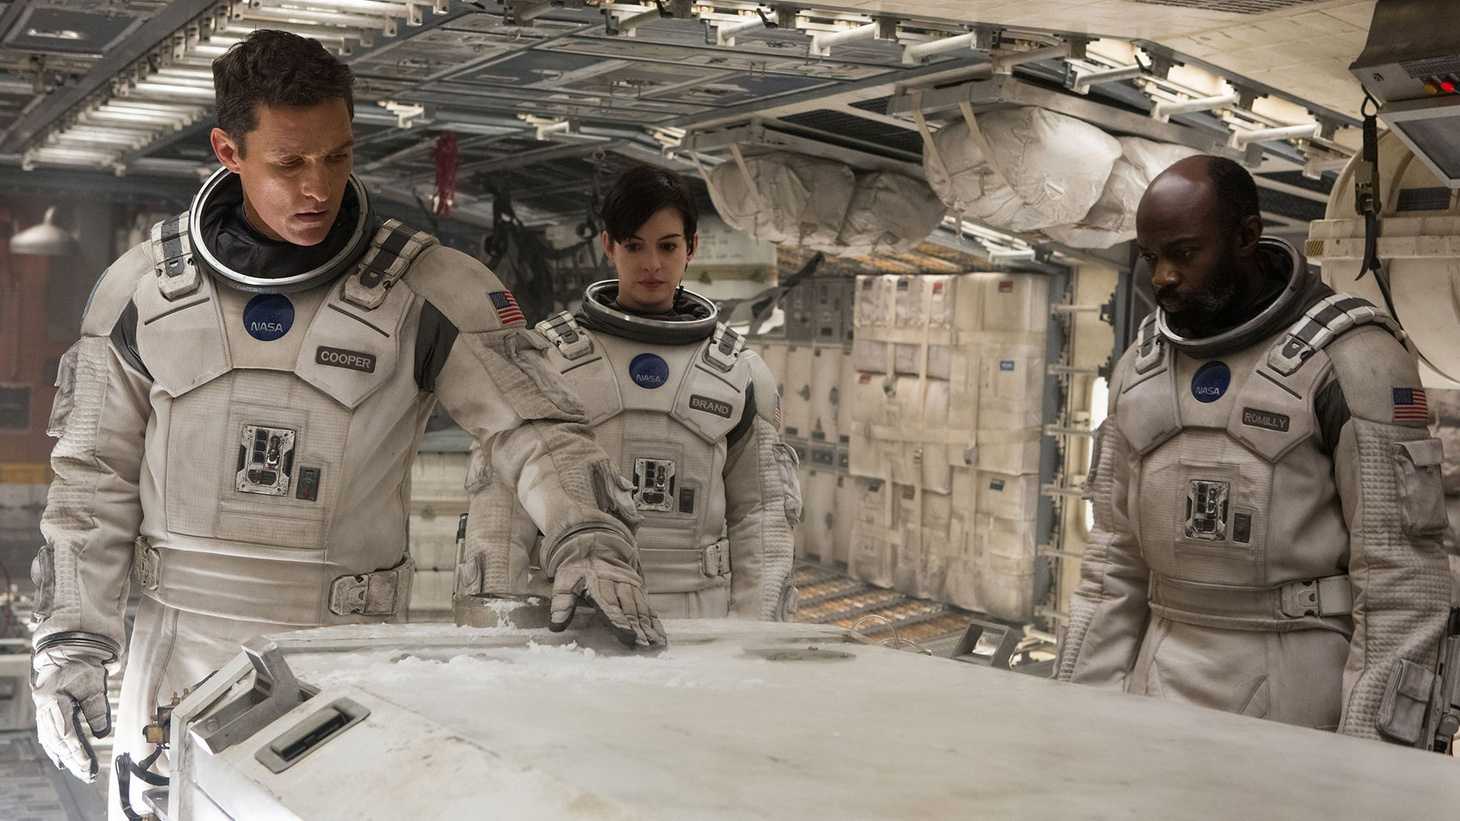 Joe Morgenstern reviews Christopher Nolan's 168-minute odyssey through the space-time continuum...